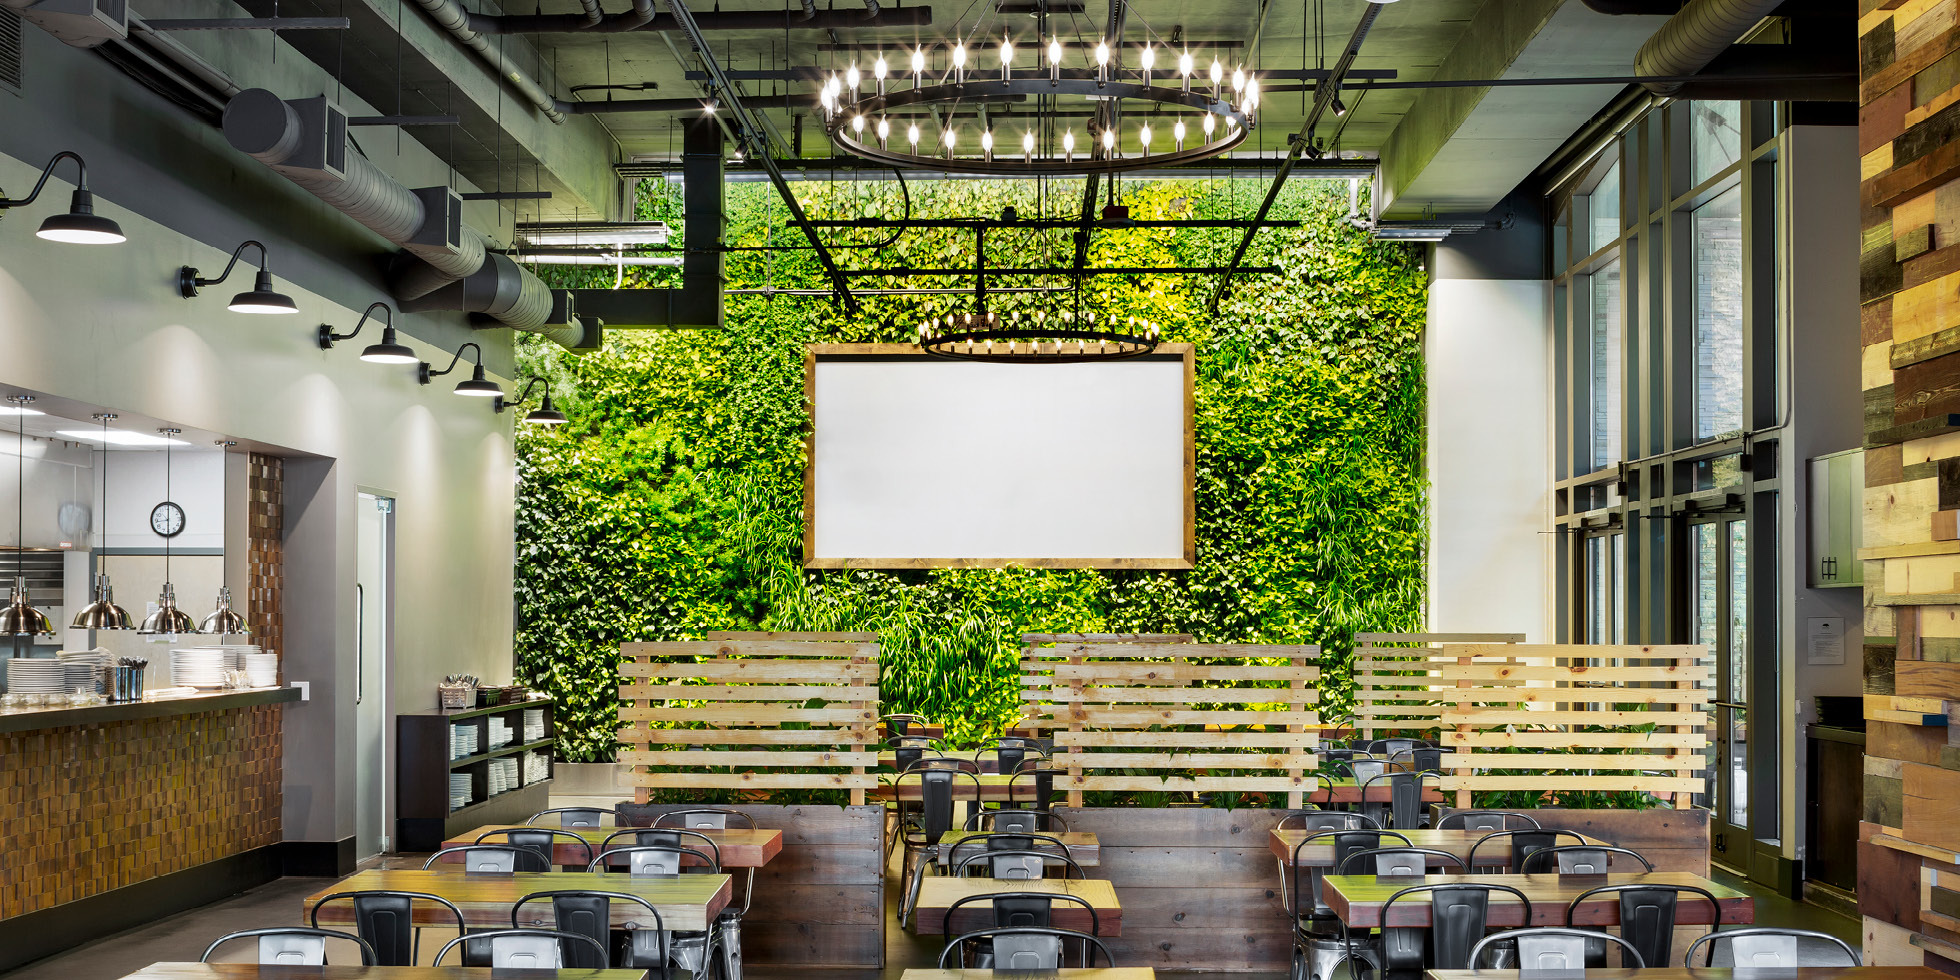 Steins Beer Garden Living Wall by Habitat Horticulture - View 1